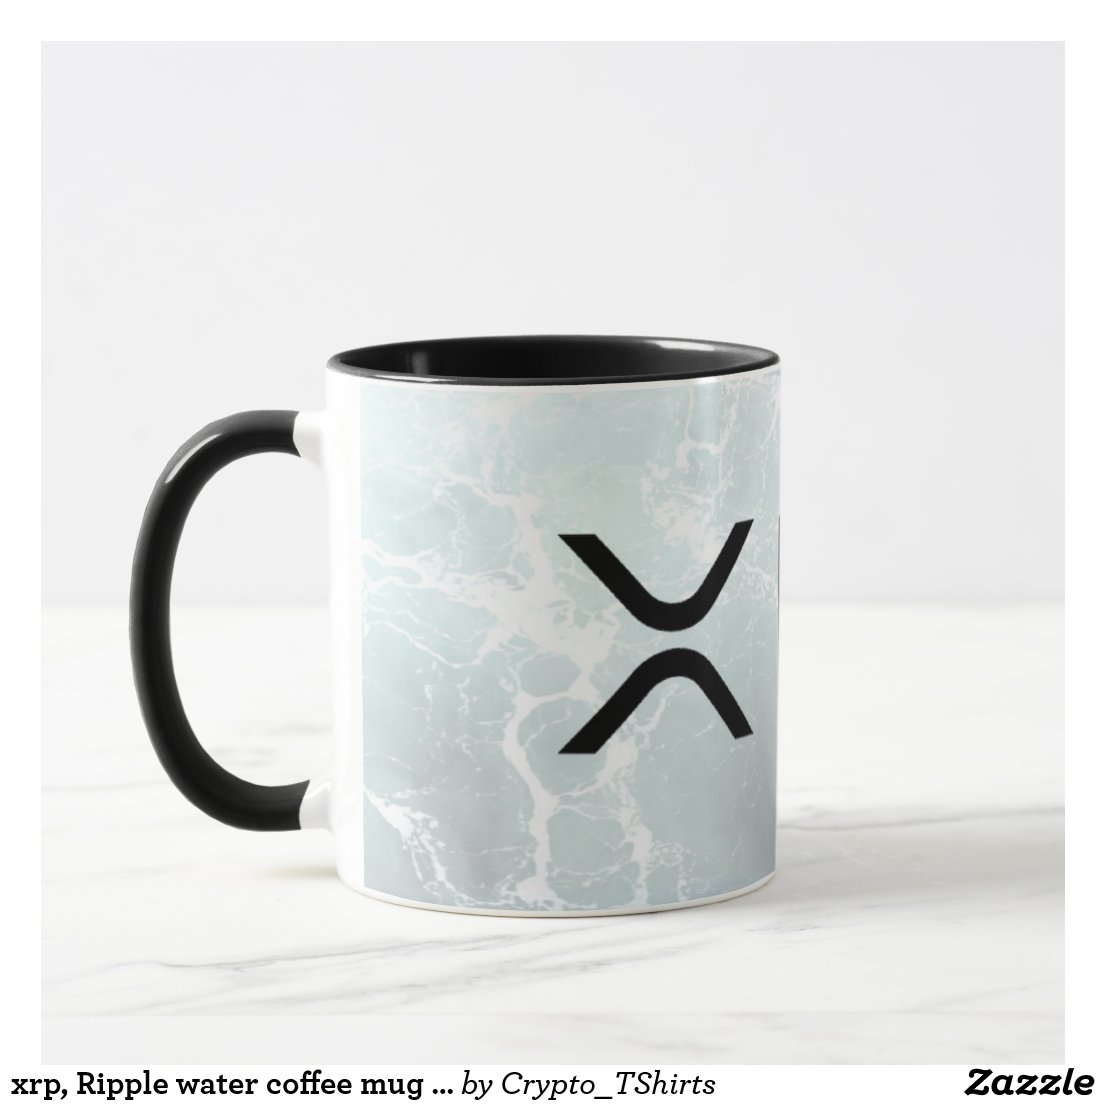 xrp, Ripple water coffee mug / cup